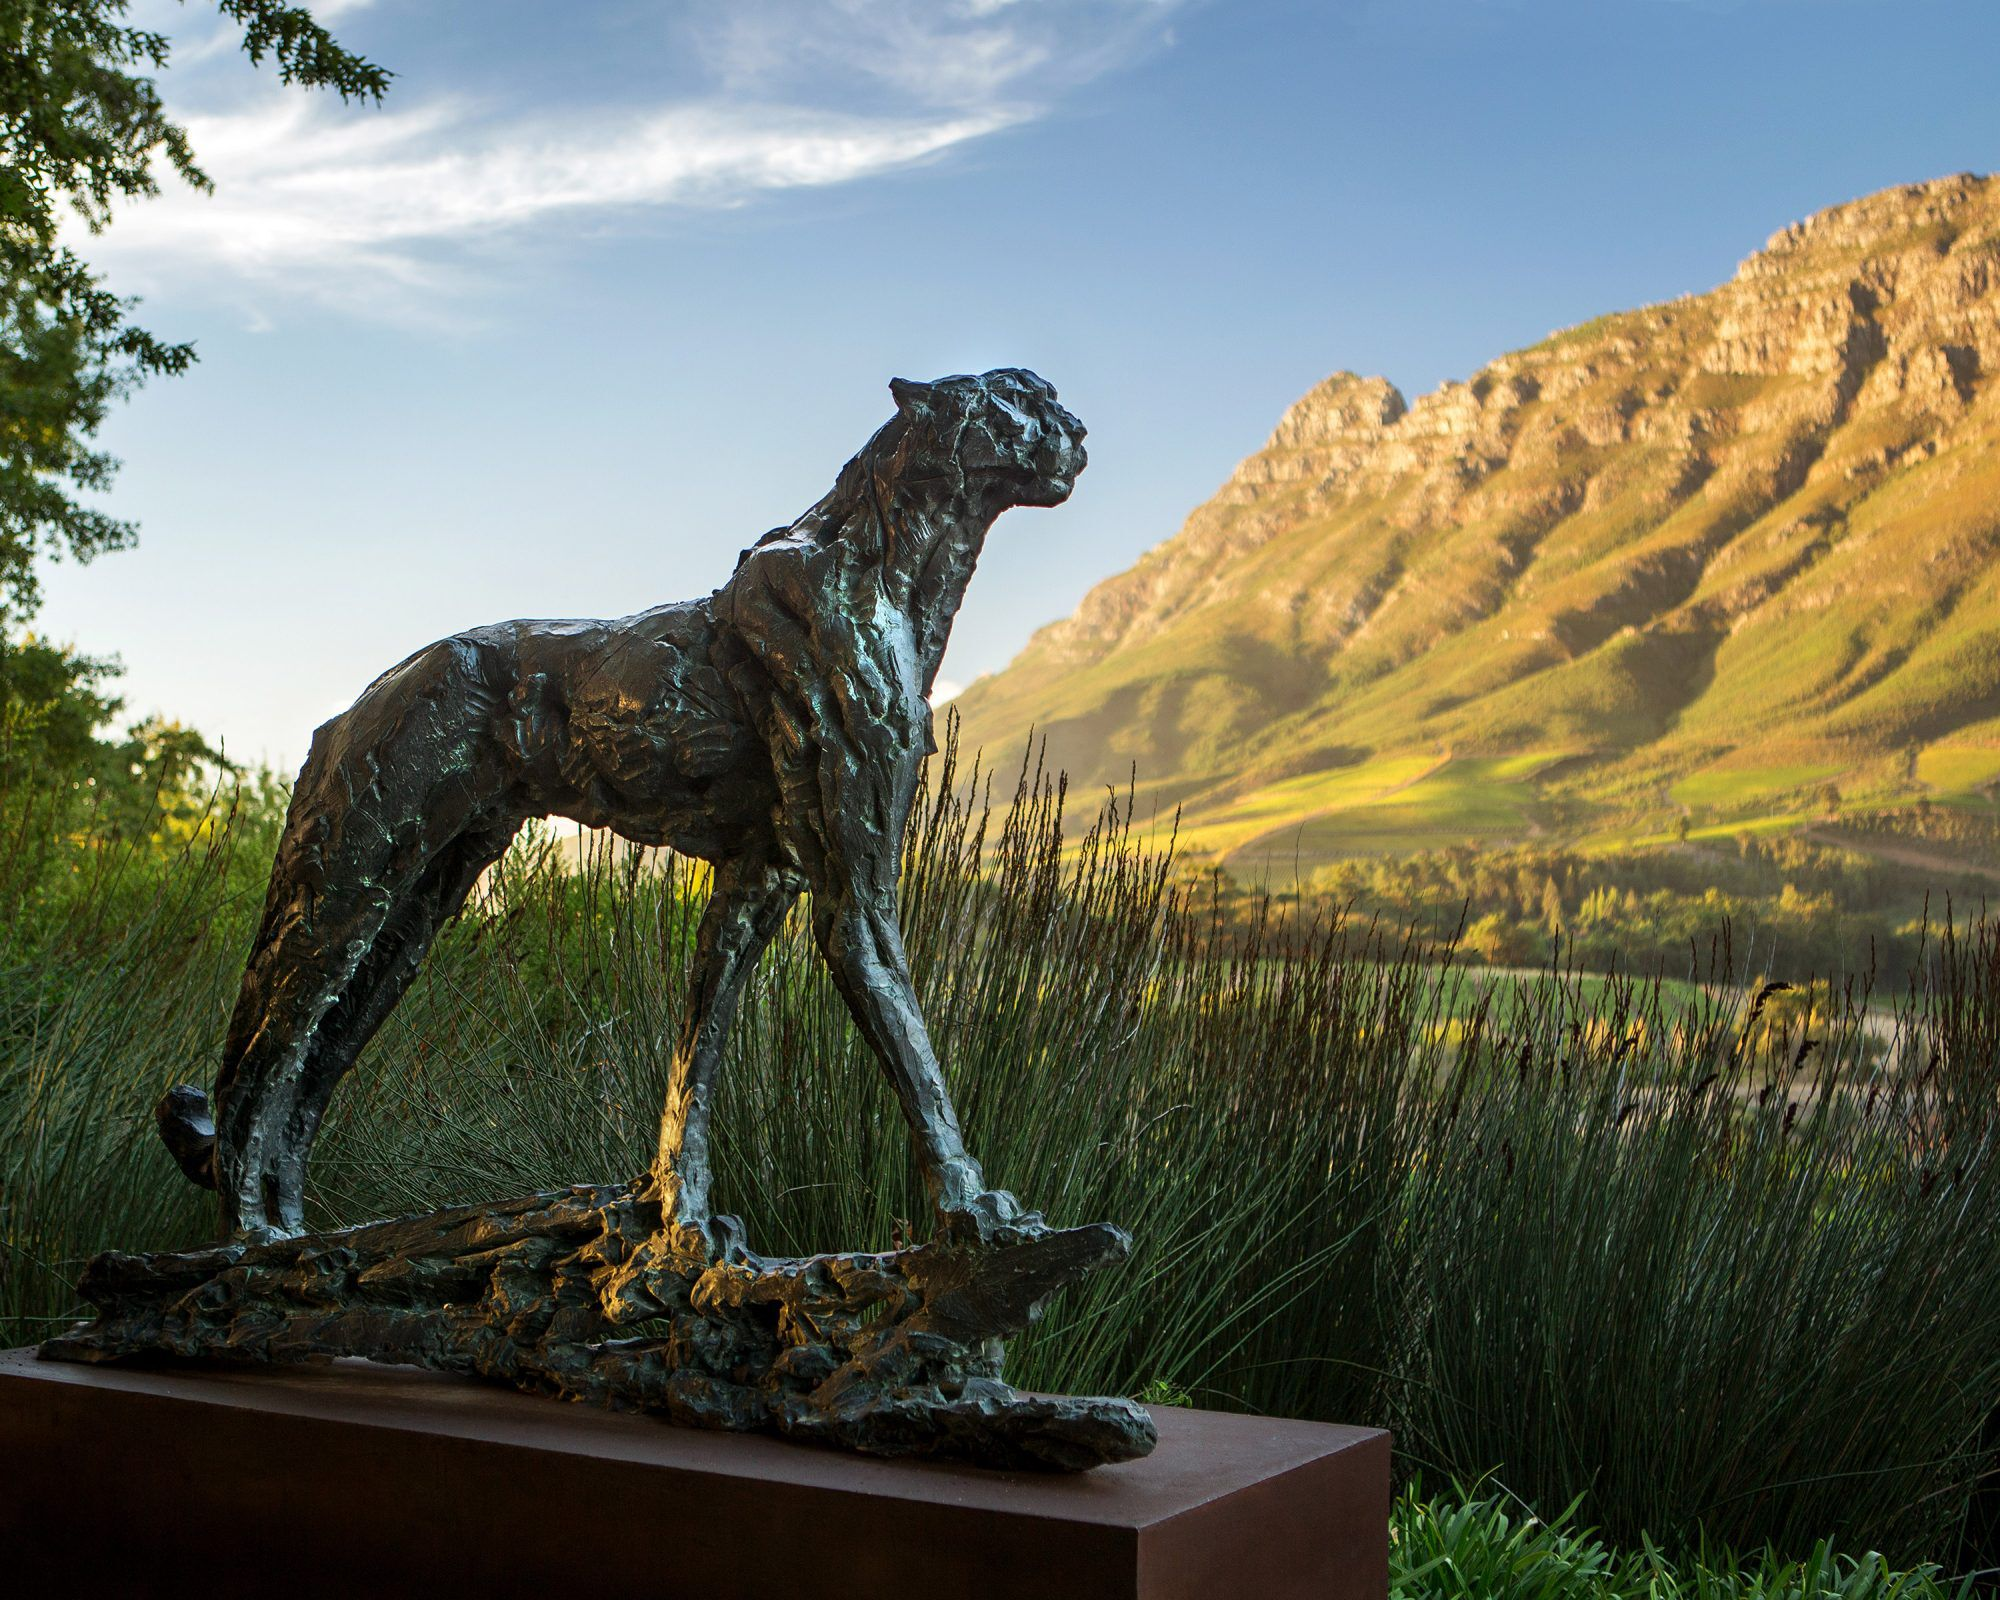 A sculpture in the garden of the Delaire Graff Estate in South Africa